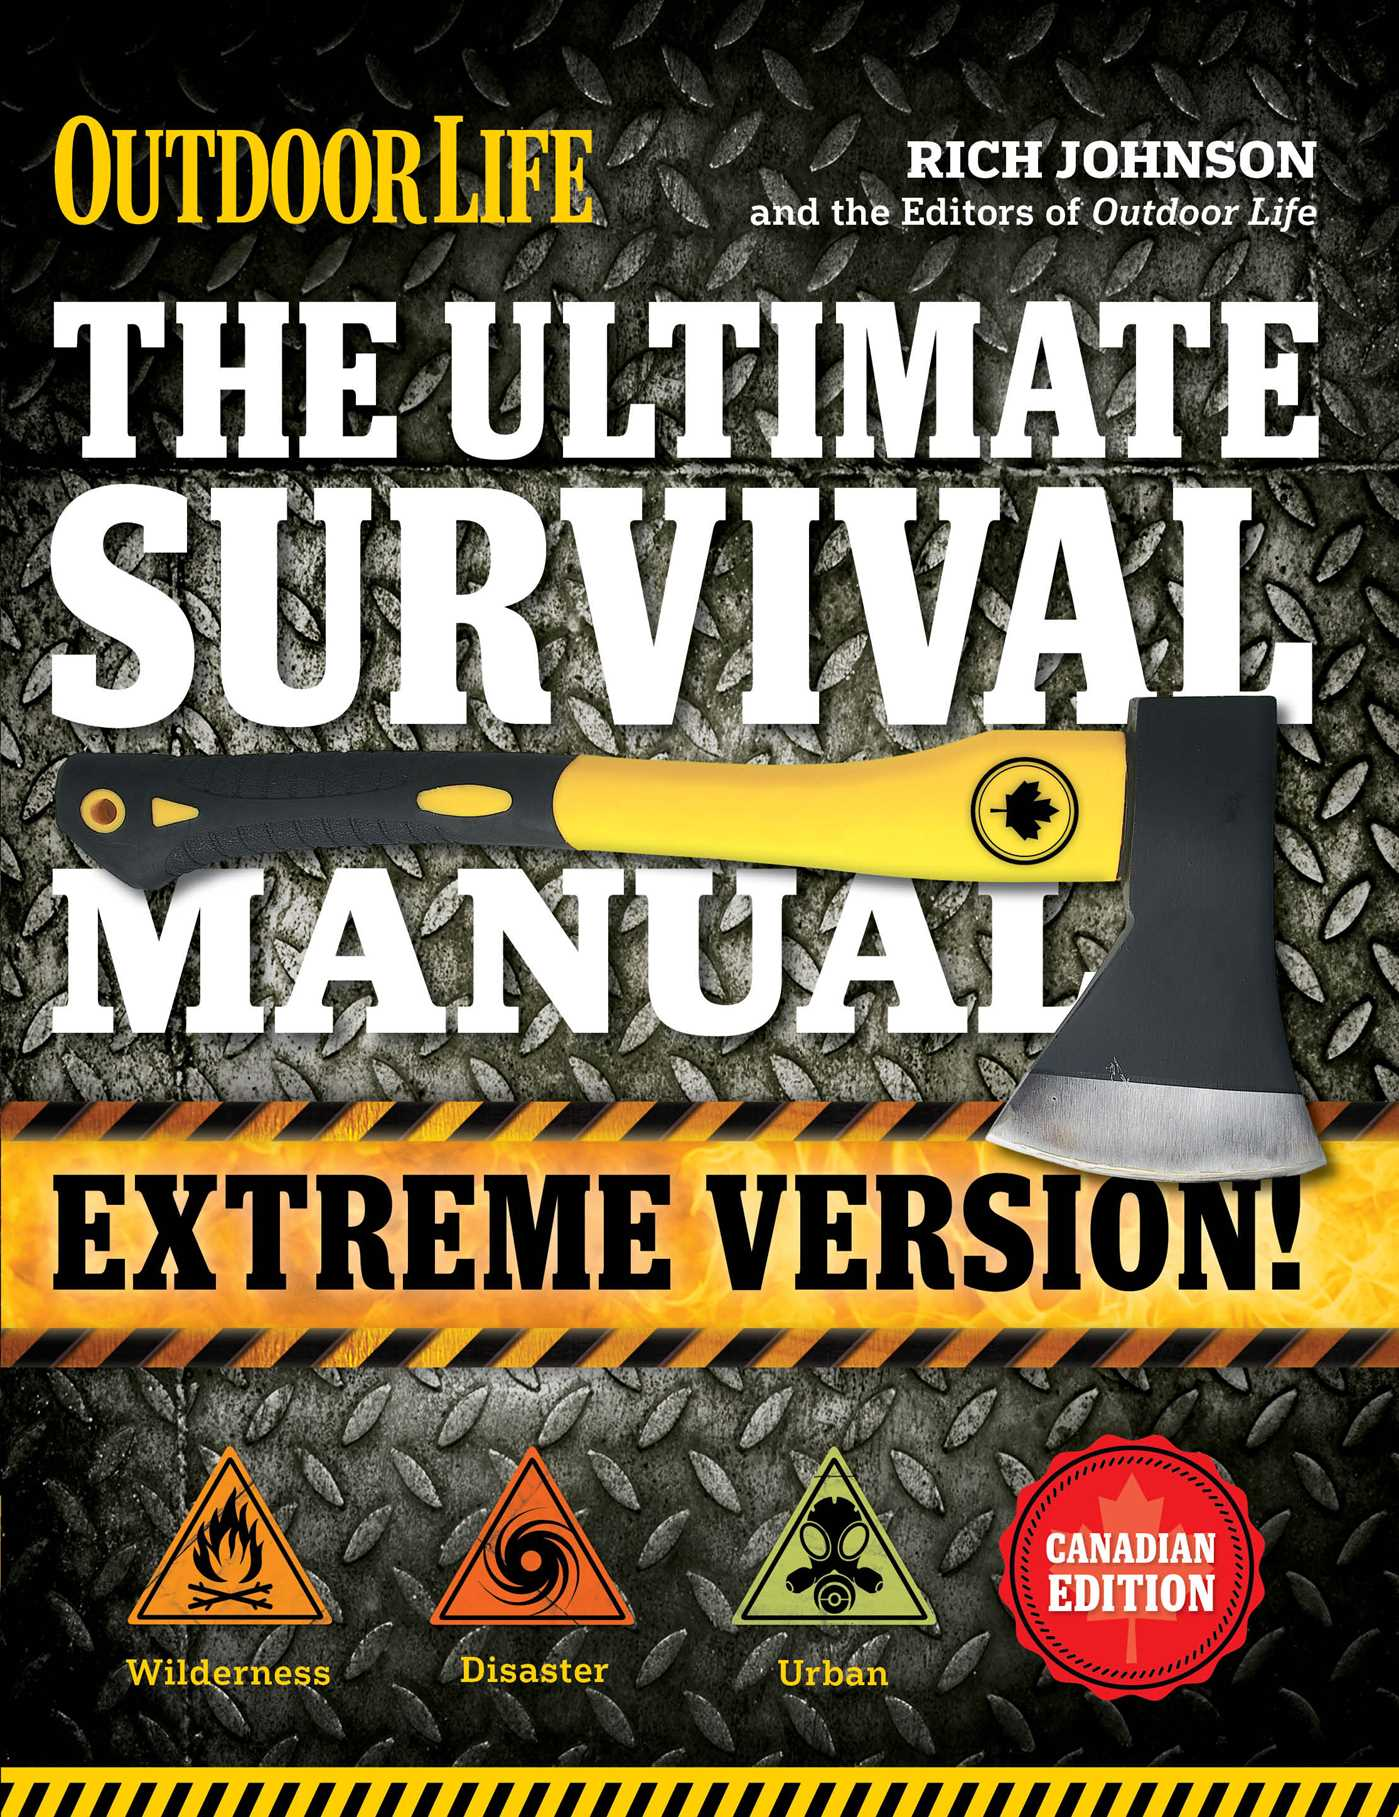 The ultimate survival manual extreme edition canadian 9781681880679 hr